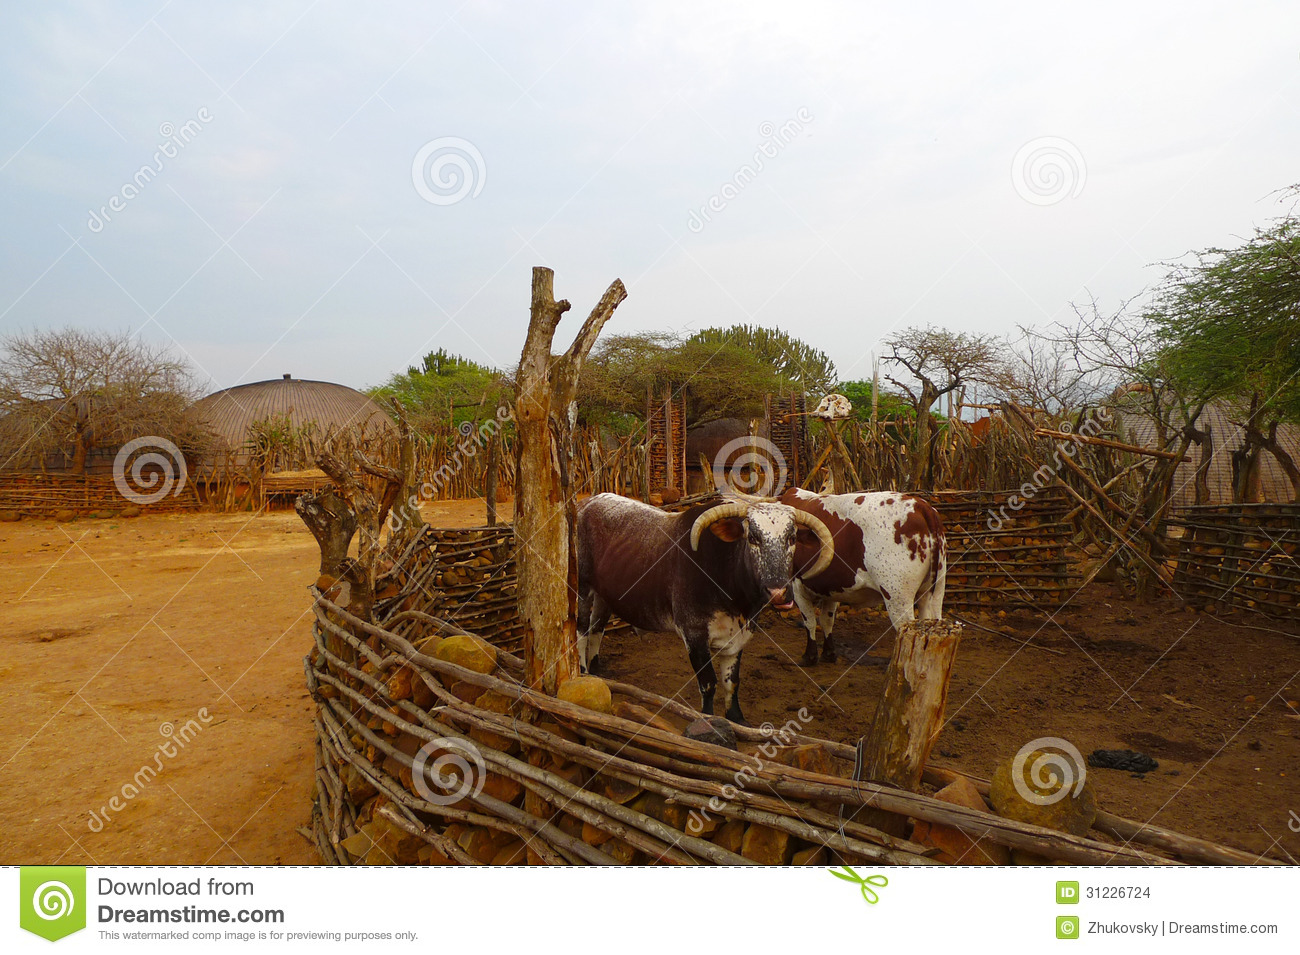 African Nguni Bulls At The Great Kraal In Zululand, South Africa.